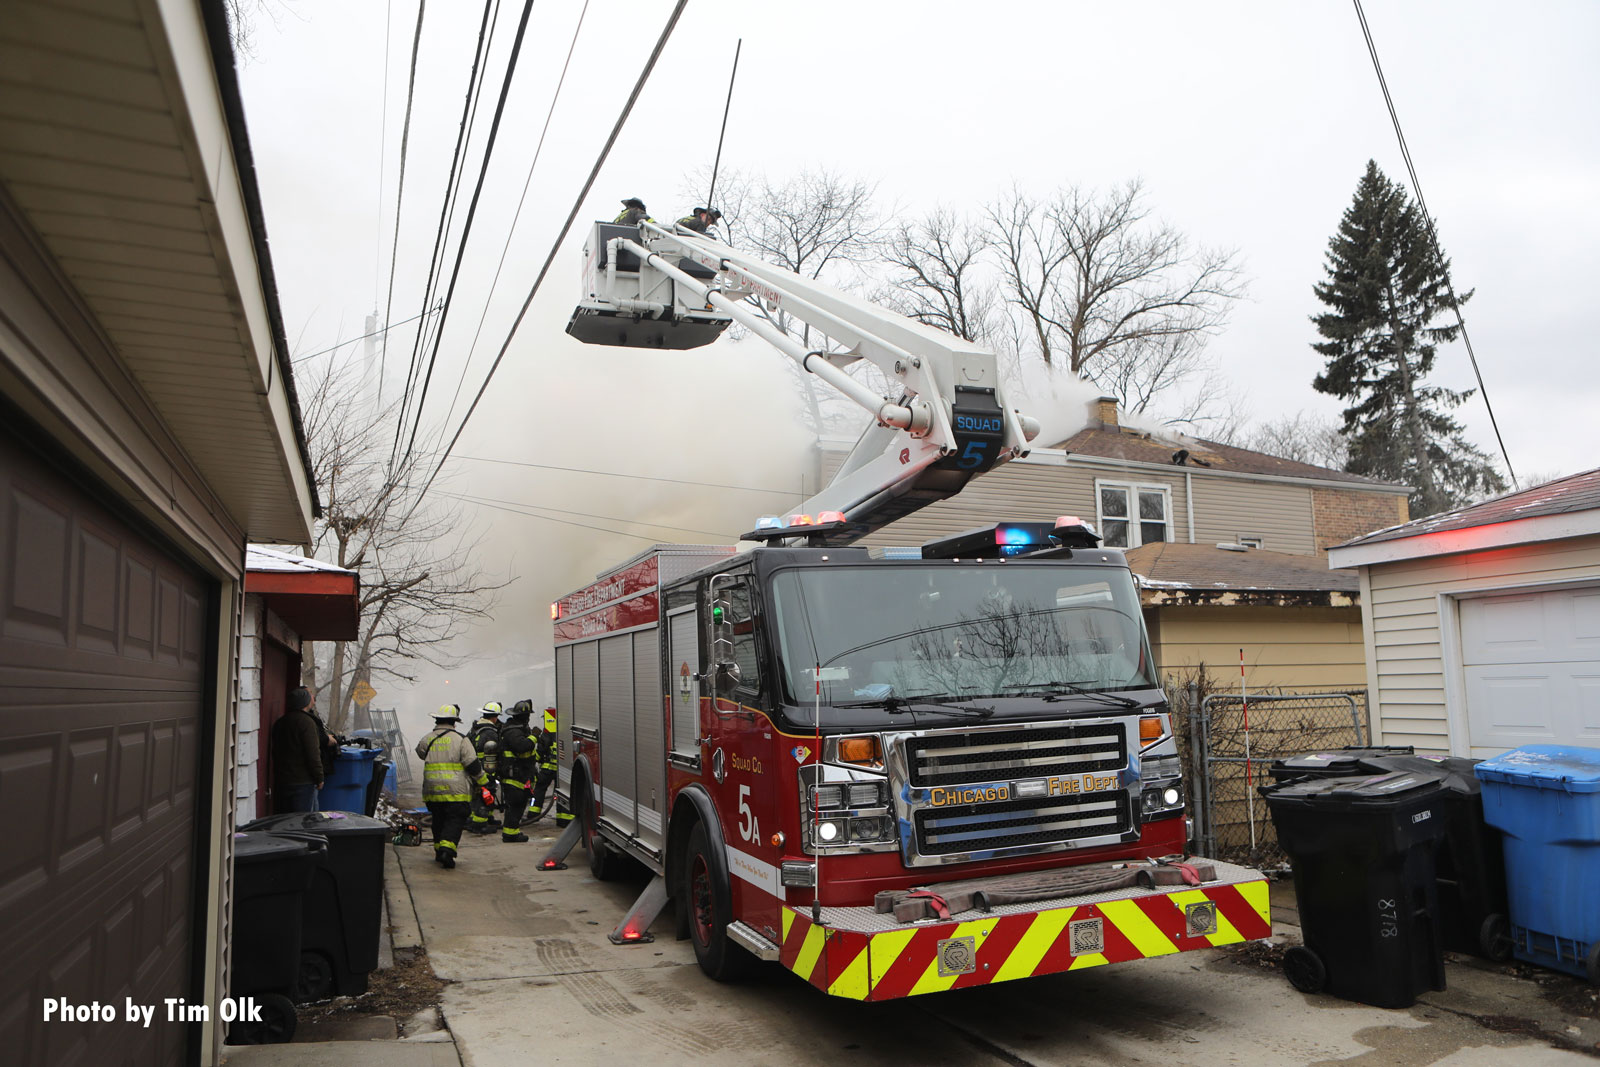 Chicago firefighters in a bucket at the fire scene